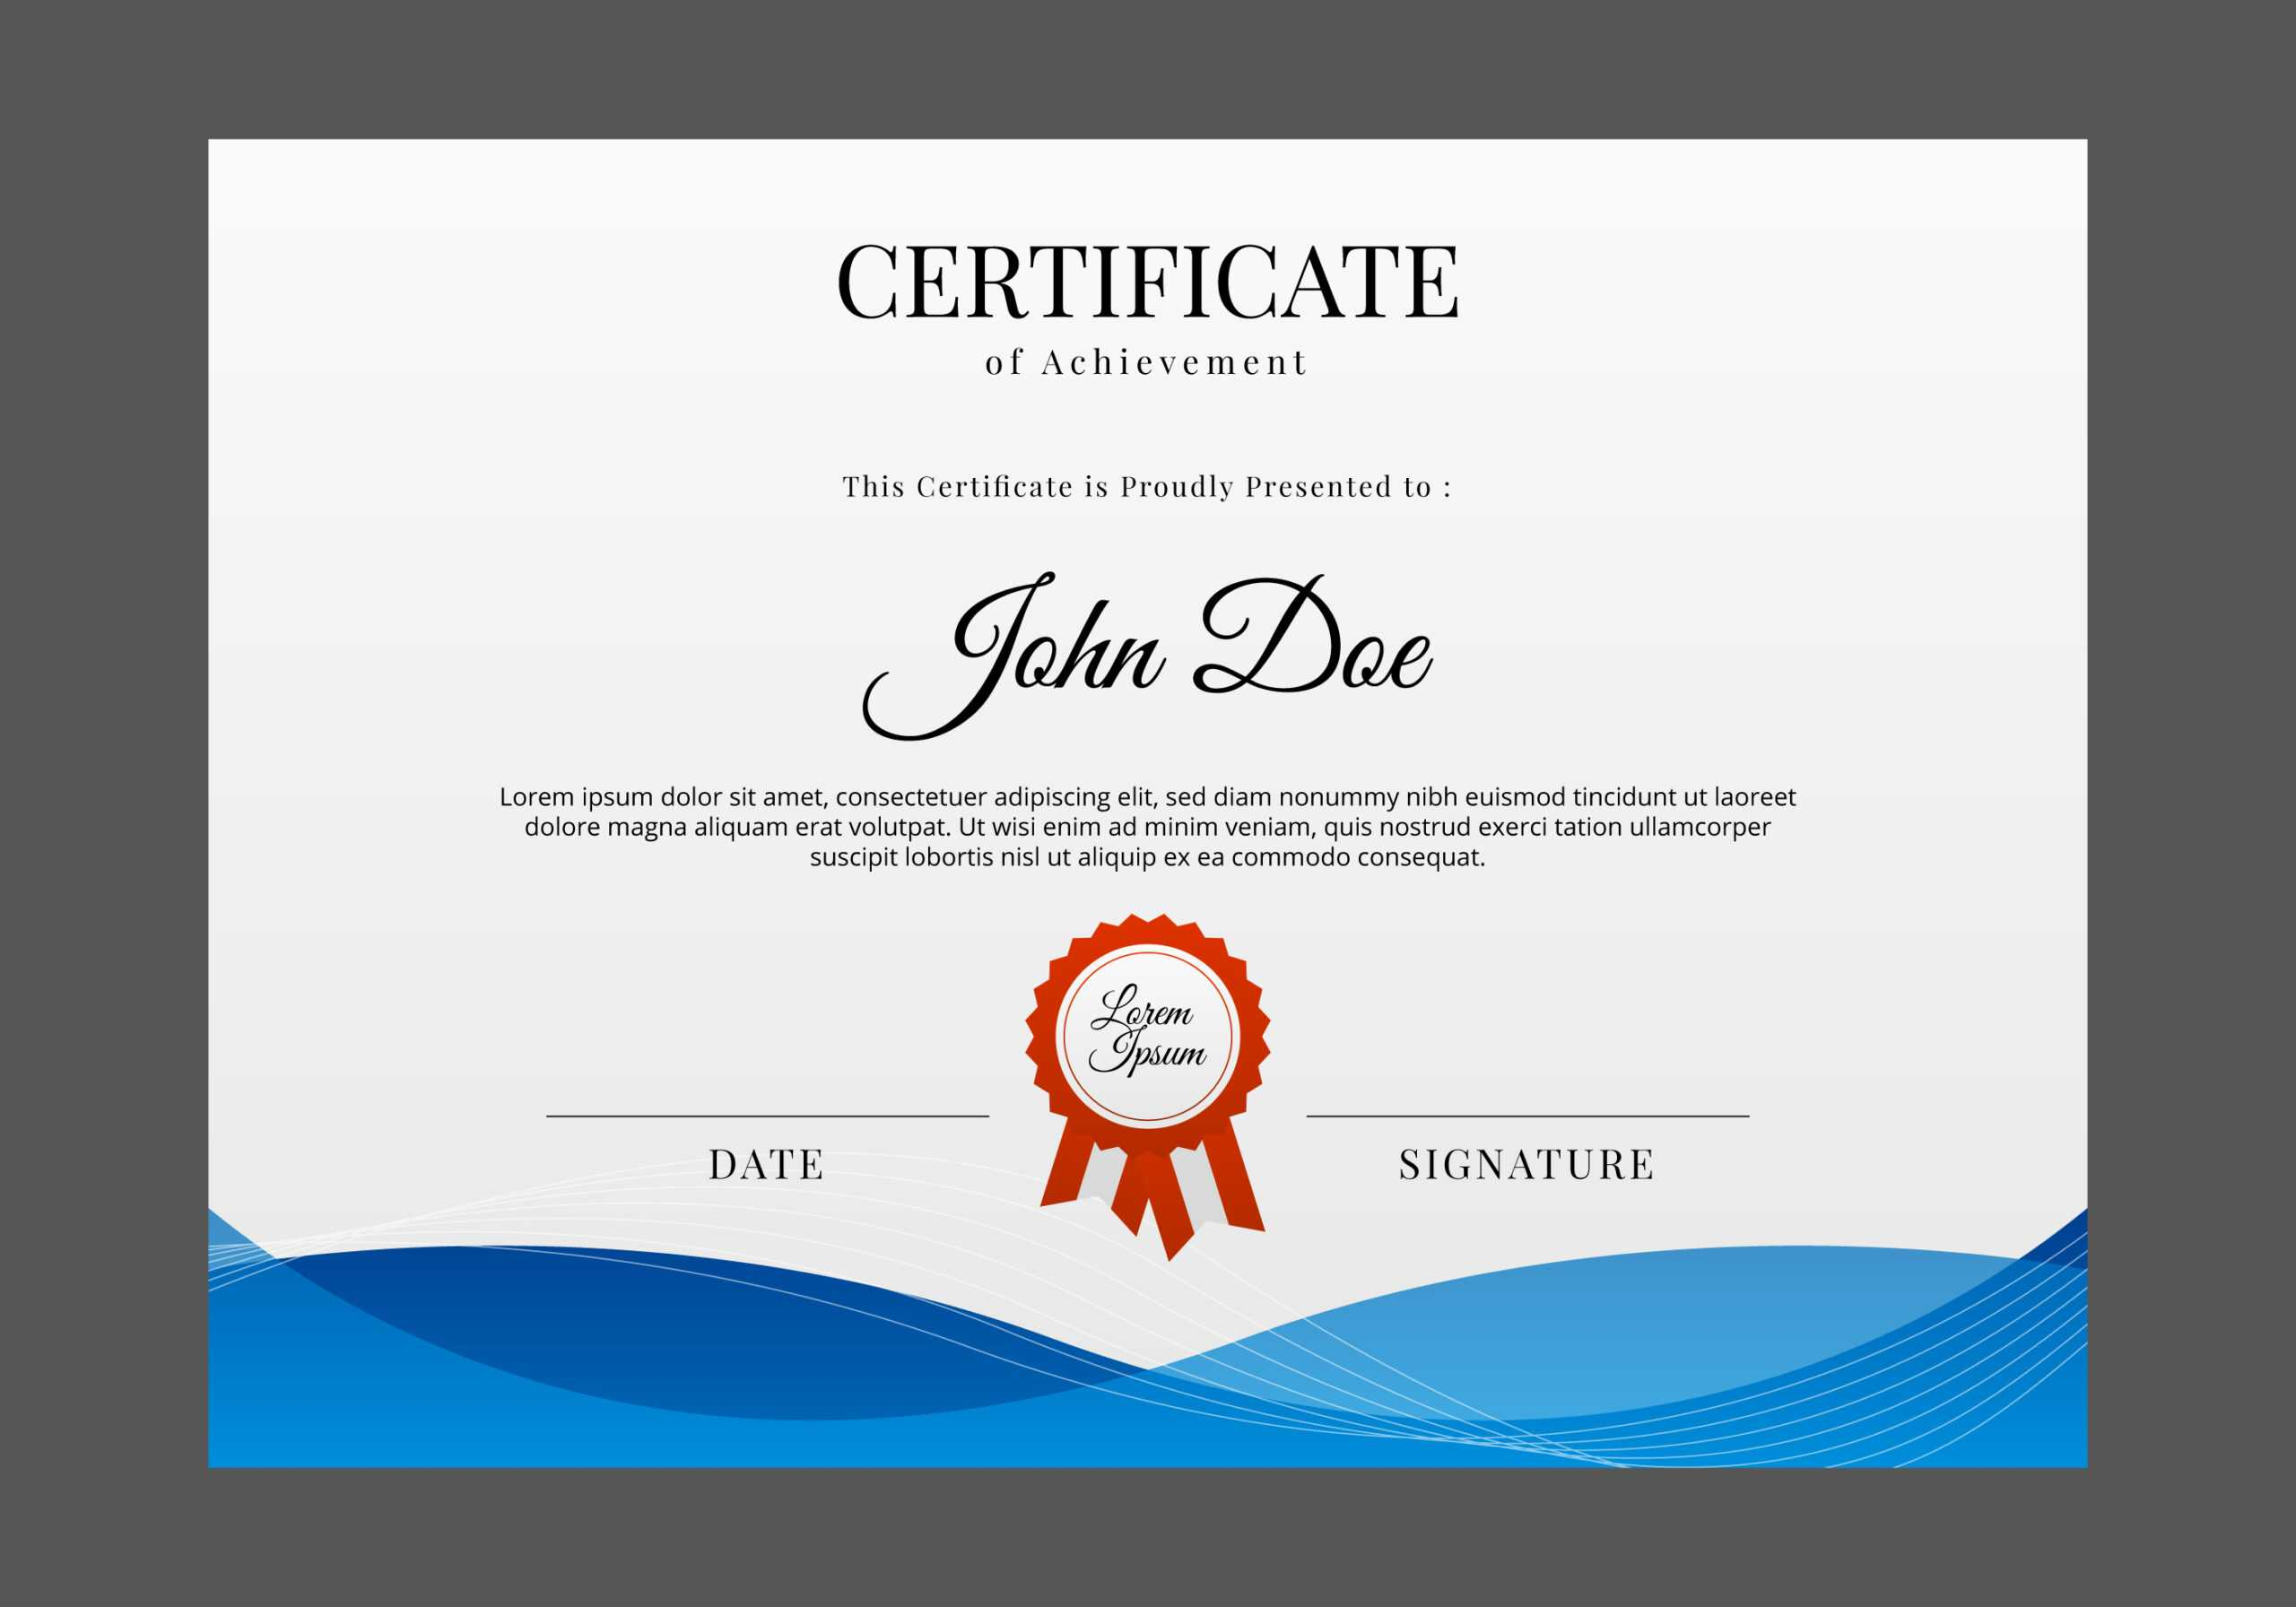 Certificate Templates, Free Certificate Designs Within Beautiful Certificate Templates